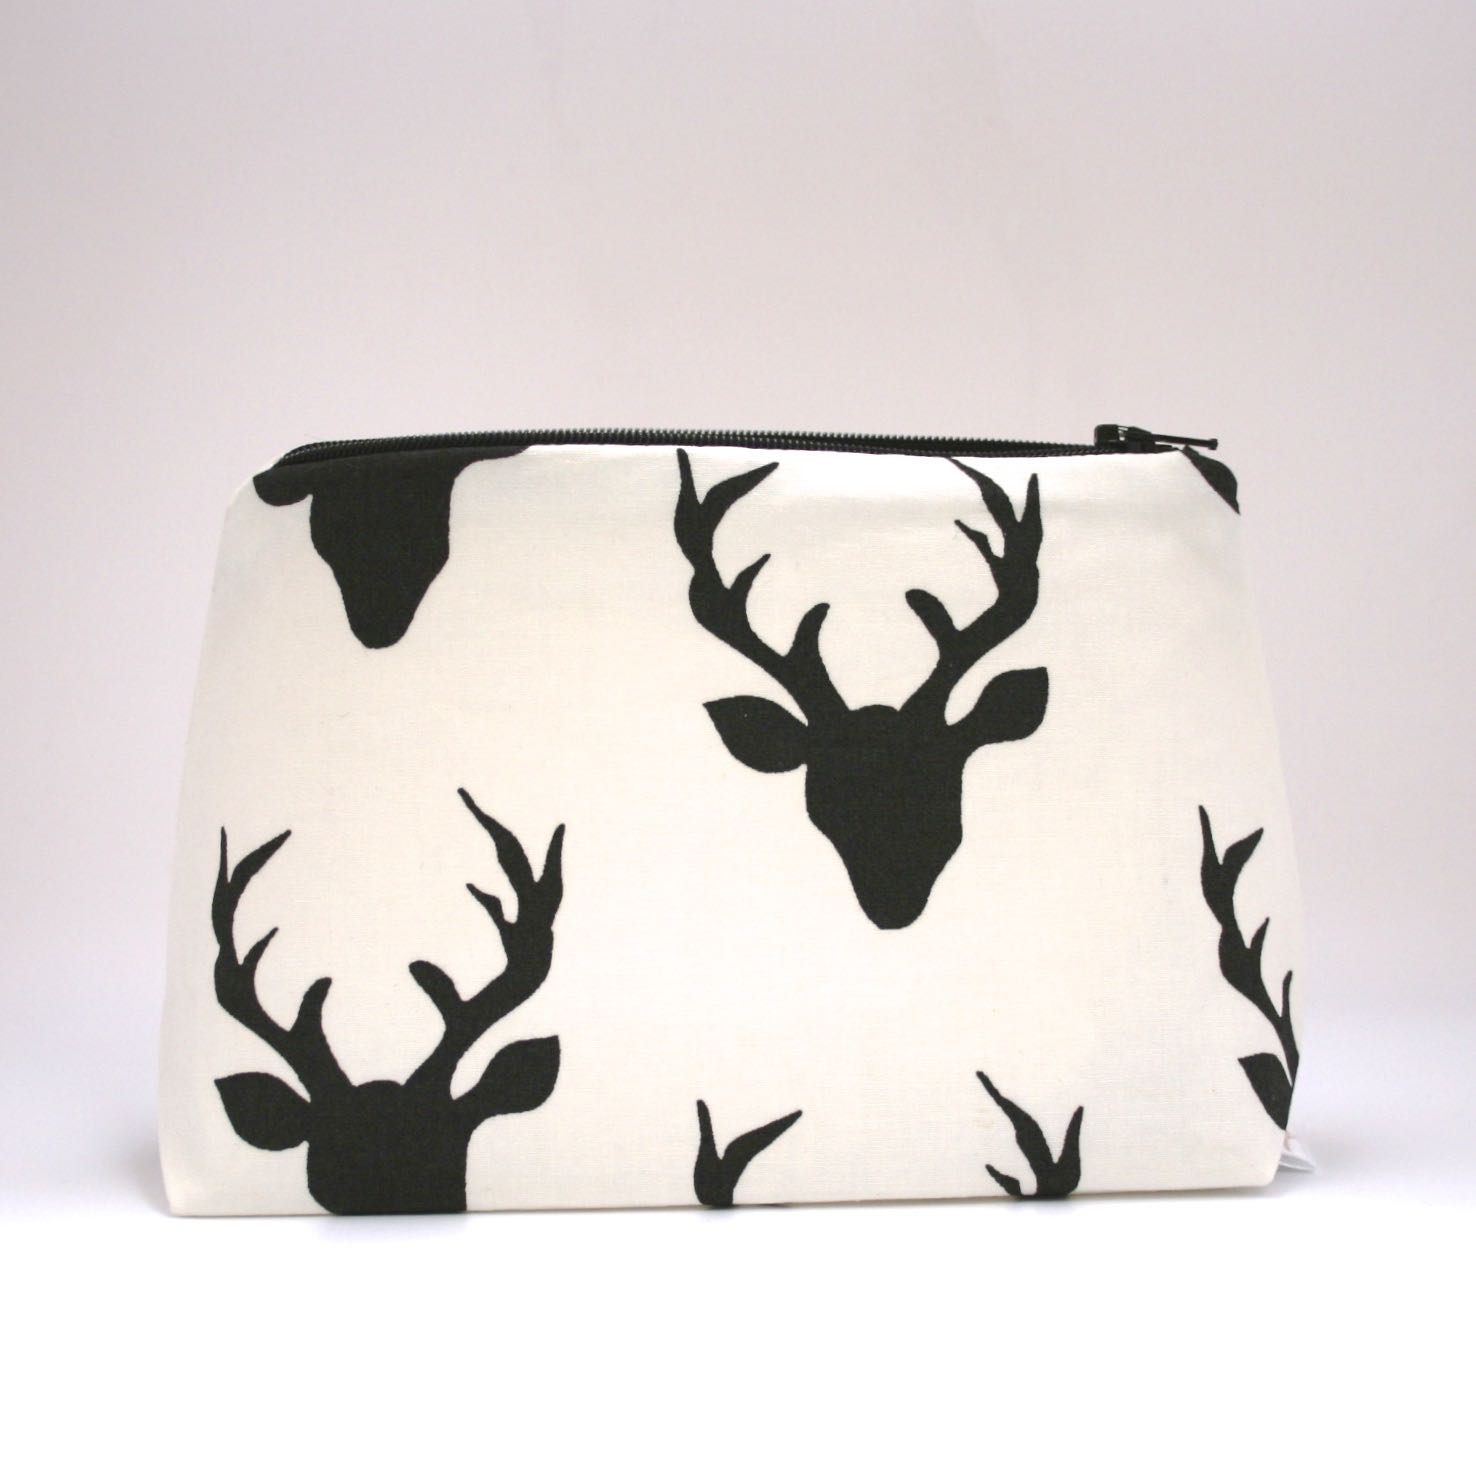 Woodland deer silhouette makeup bag   le pique nique by jordani sarreal 01